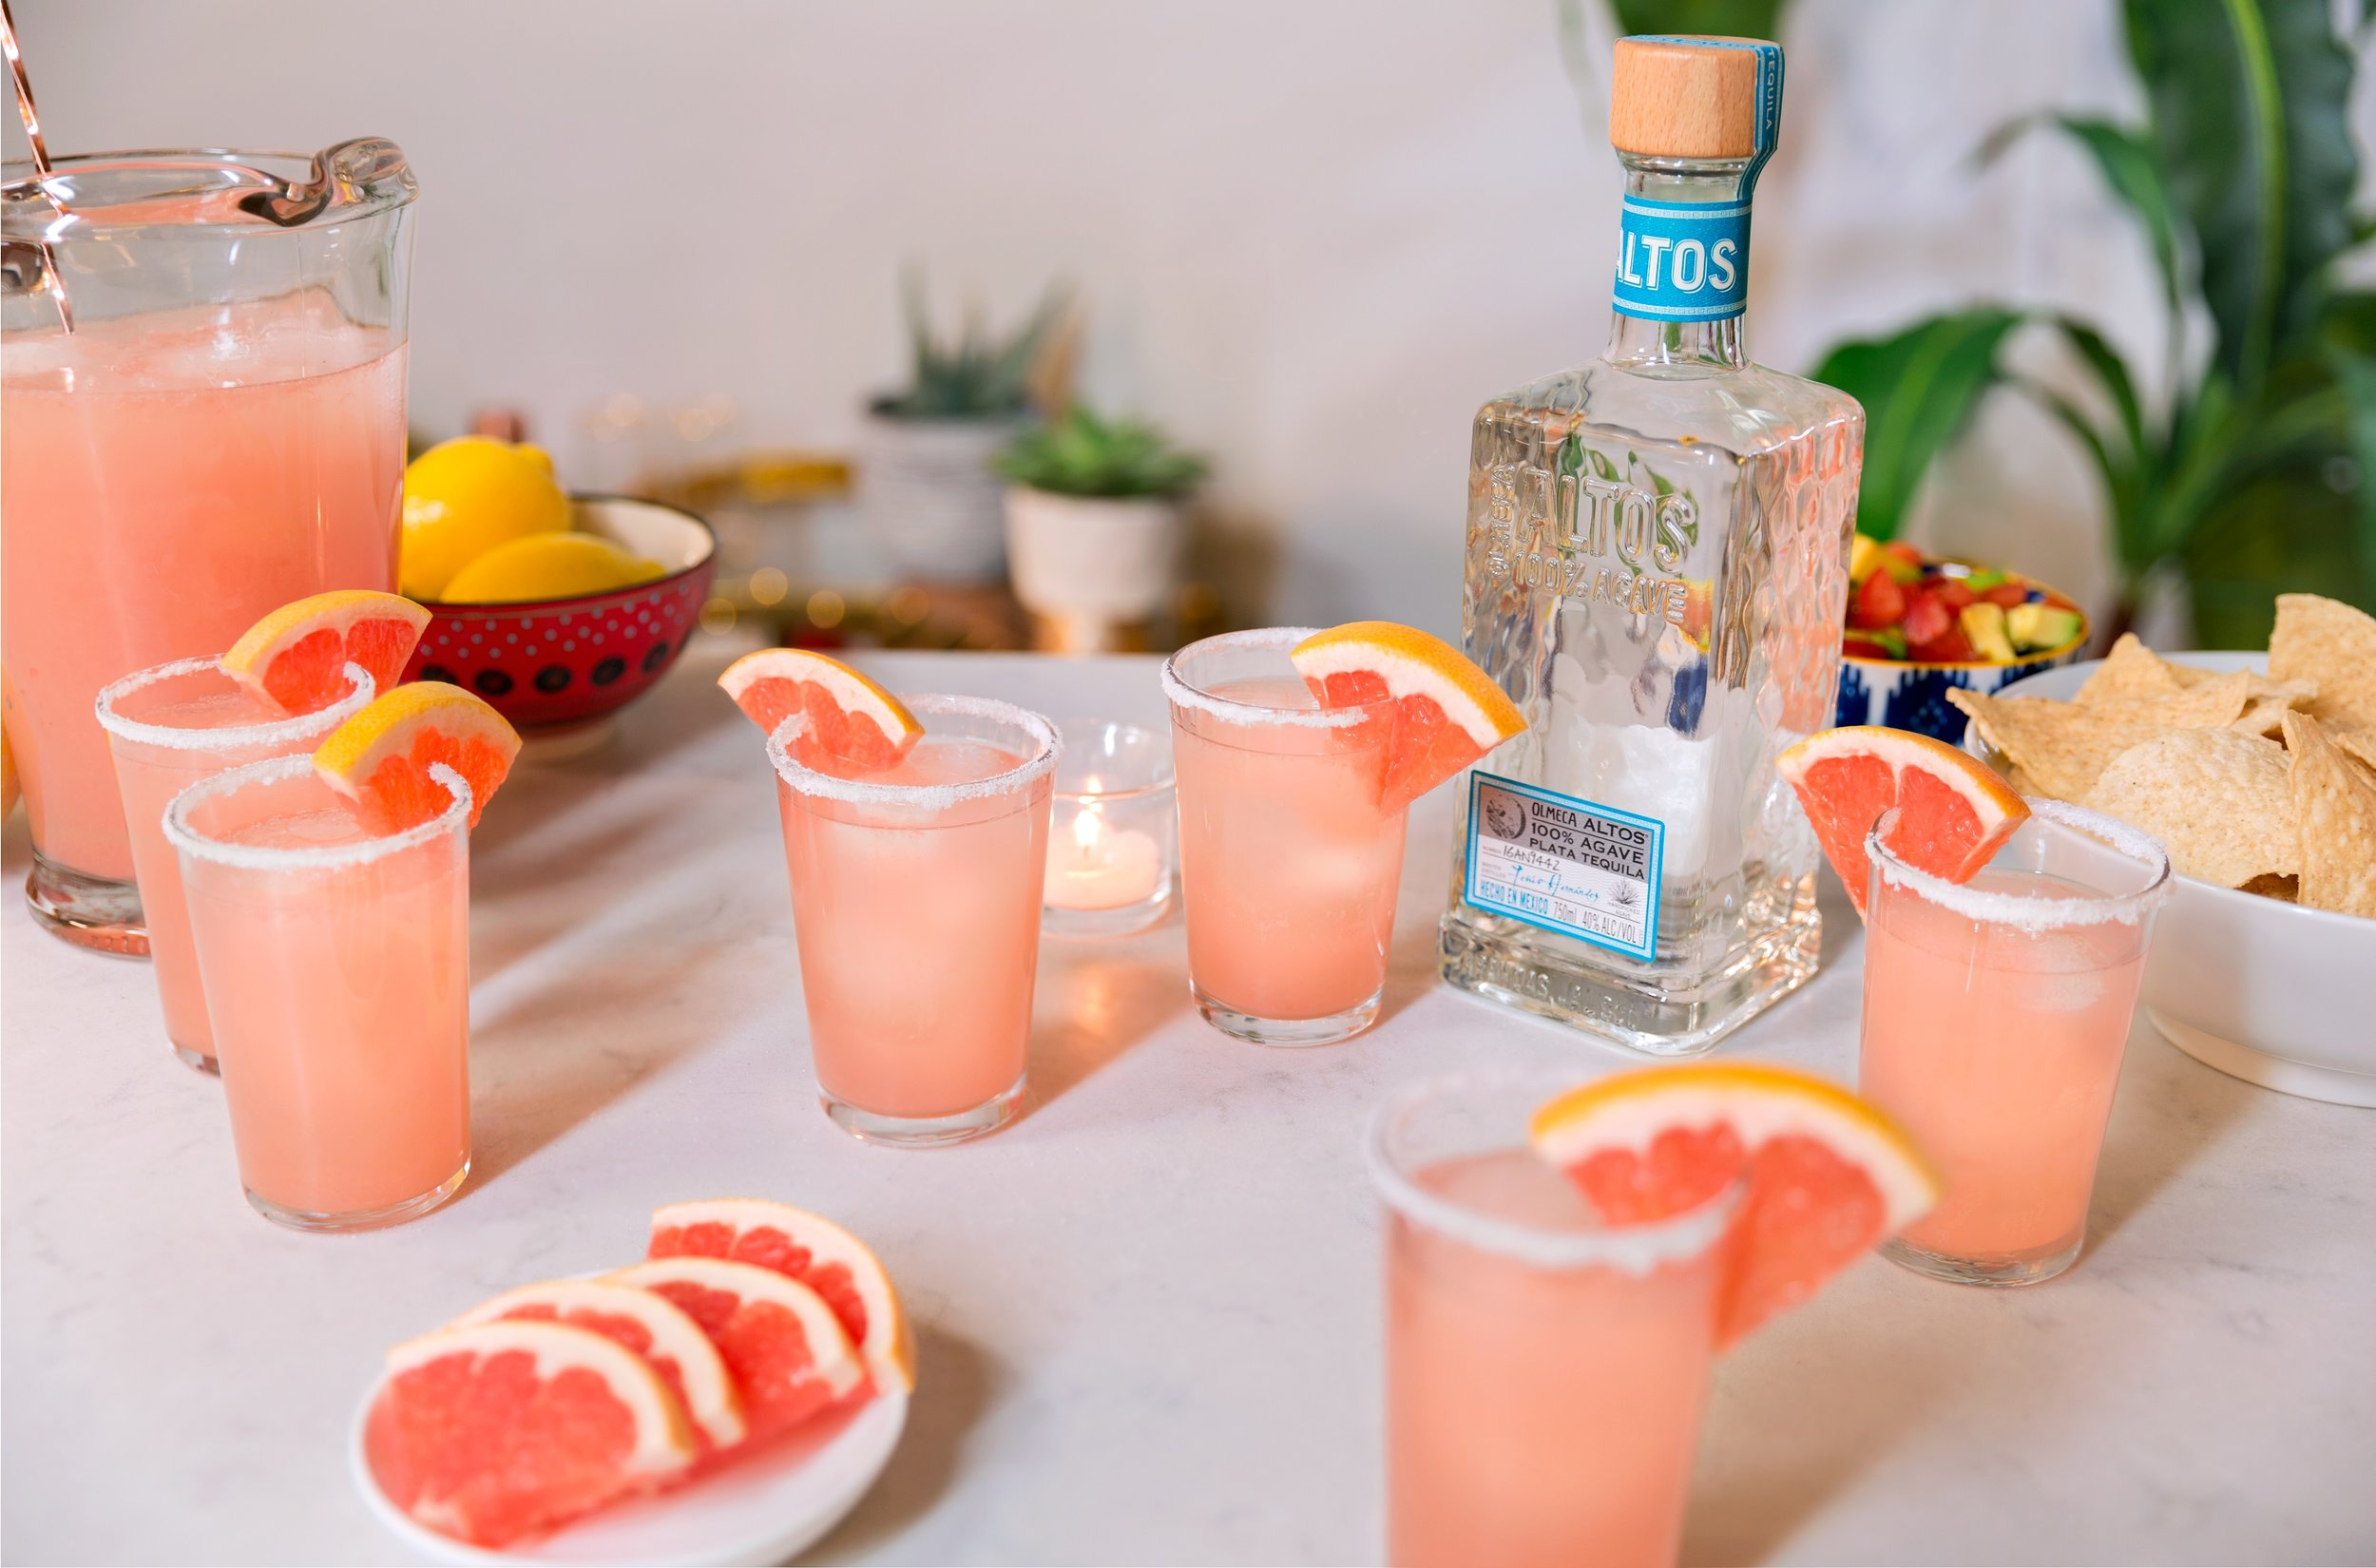 Altos Crafted Paloma on The Gilded Bellini